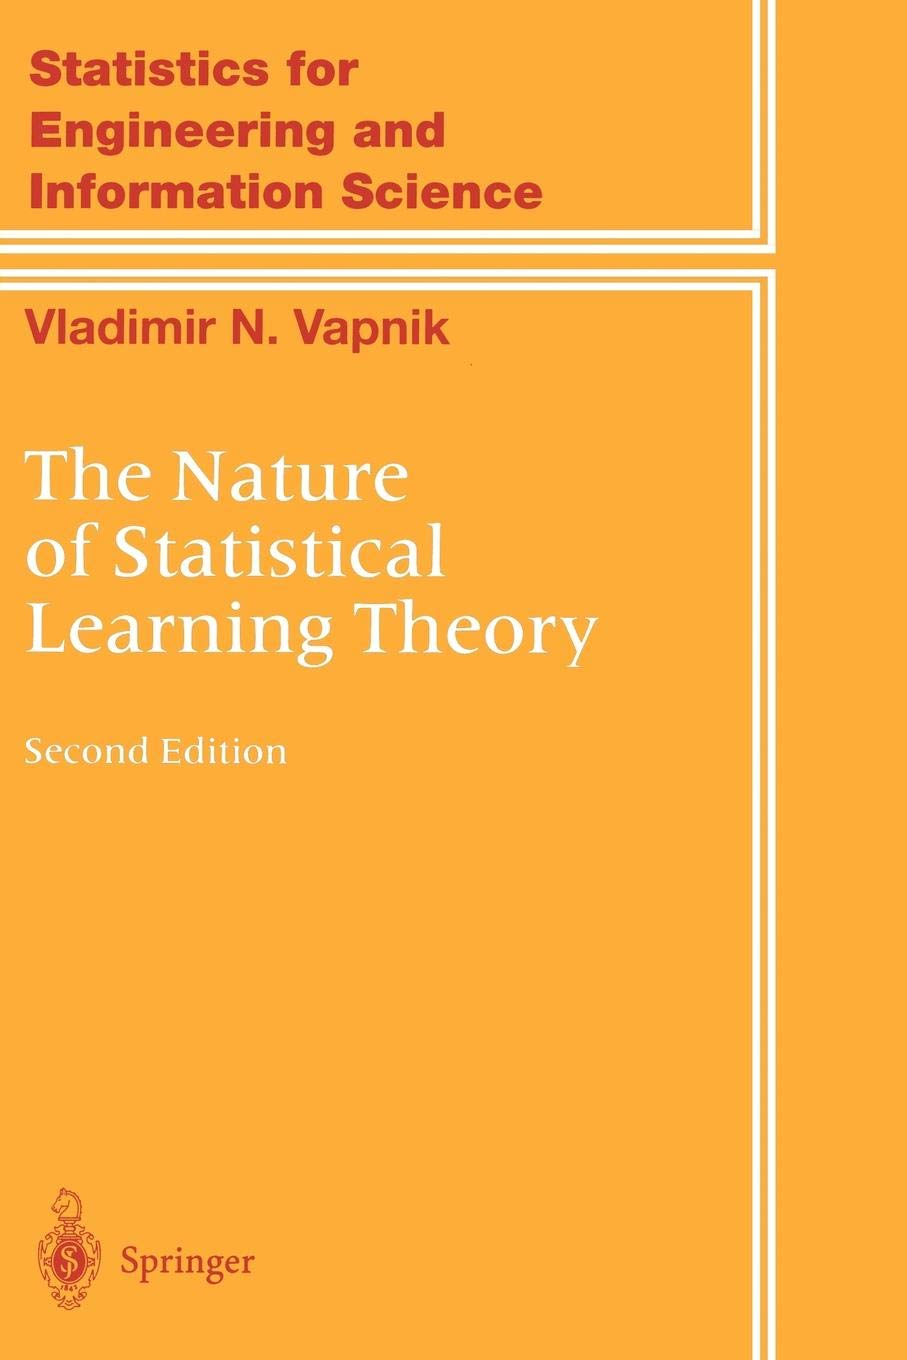 The Nature of Statistical Learning Theory (Information Science and Statistics) 2nd Edition (2000)